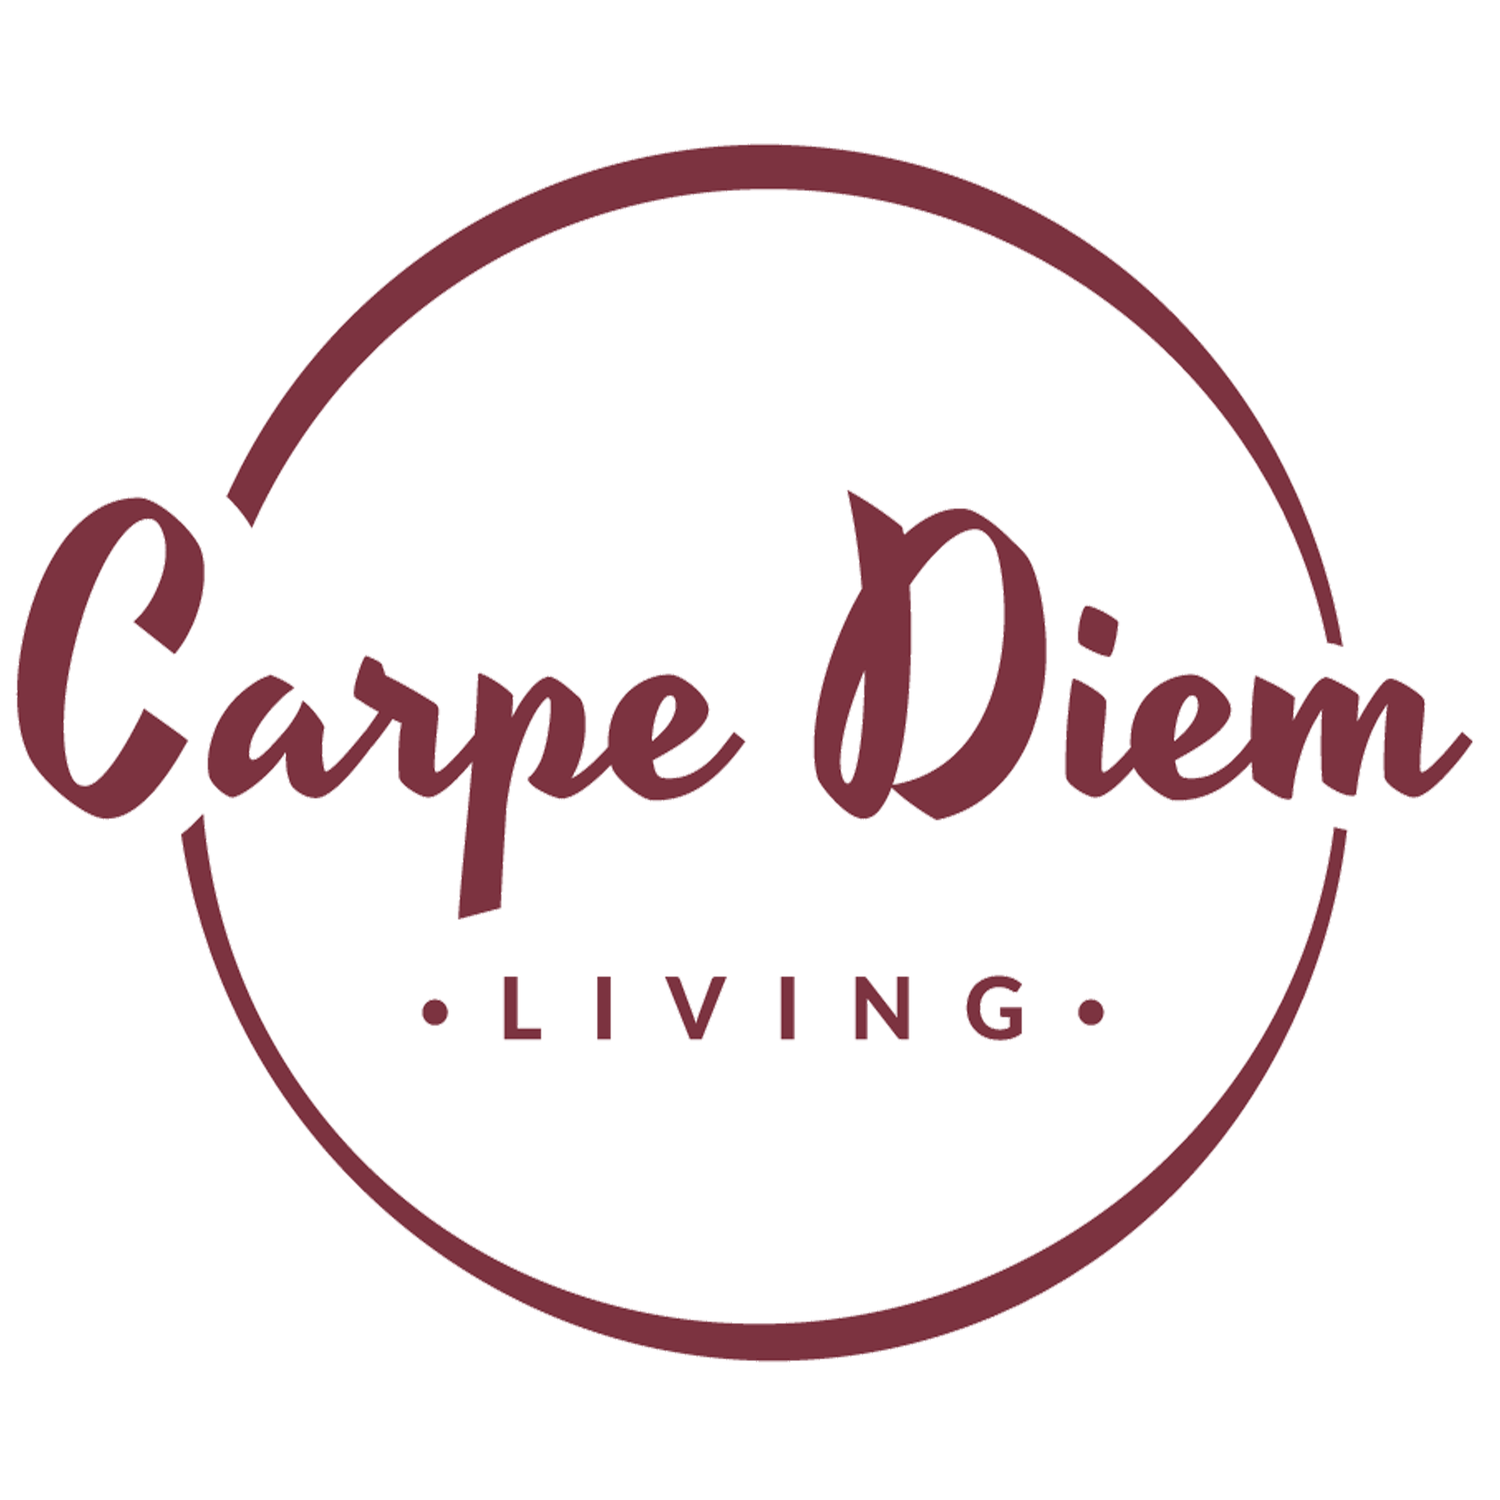 Carpe Diem Living